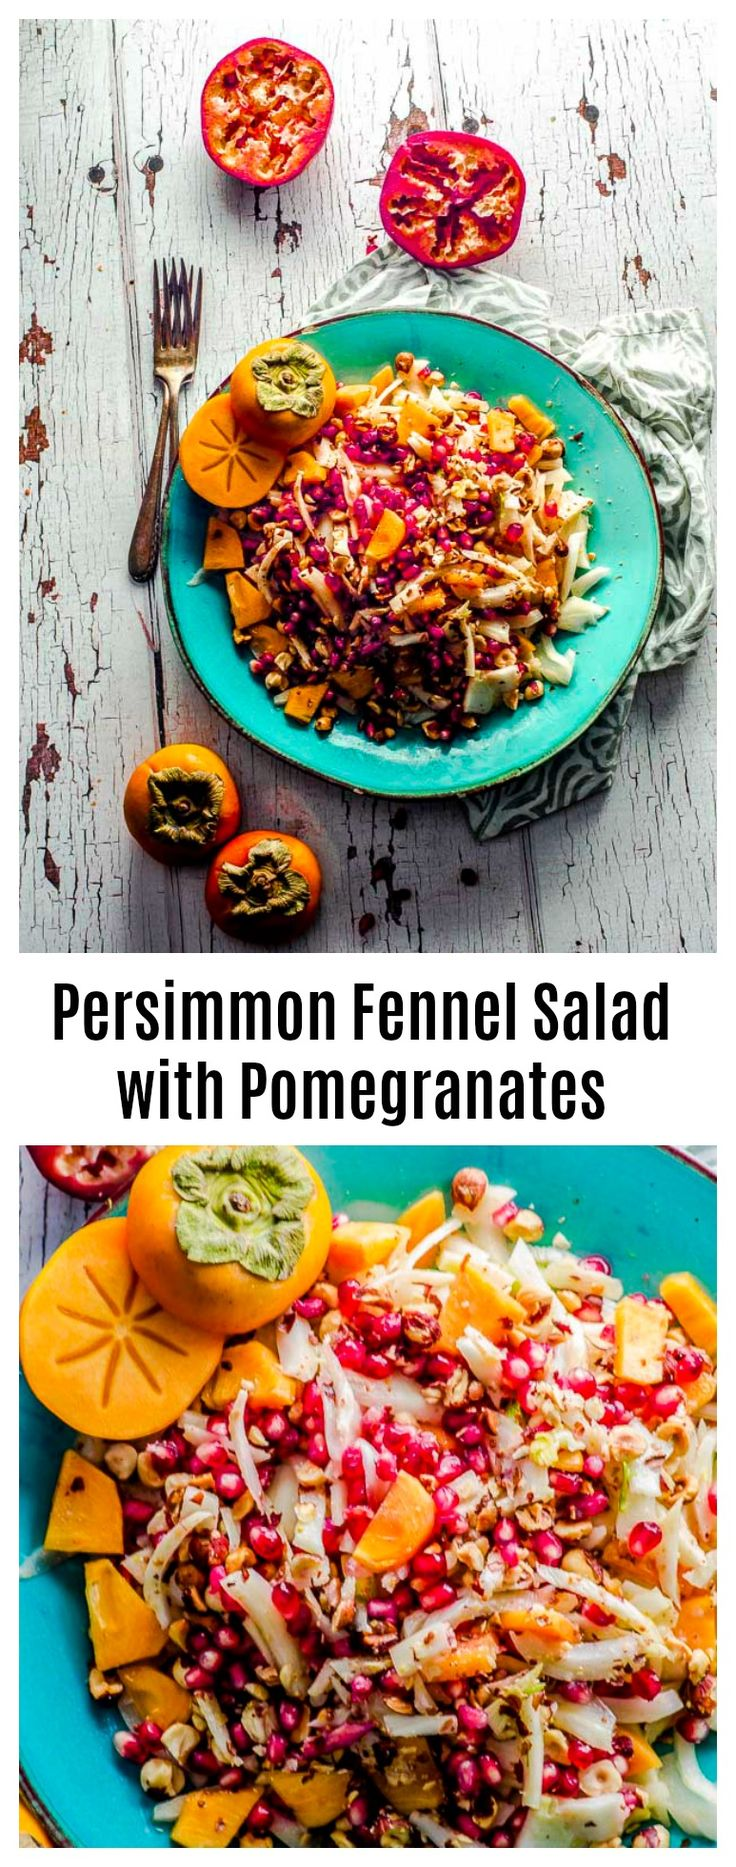 Meet our new favorite salad! Persimmon Fennel Salad with Pomegranate and Hazelnuts. A guaranteed crowd pleaser with a wonderful balance of sweet and savory.